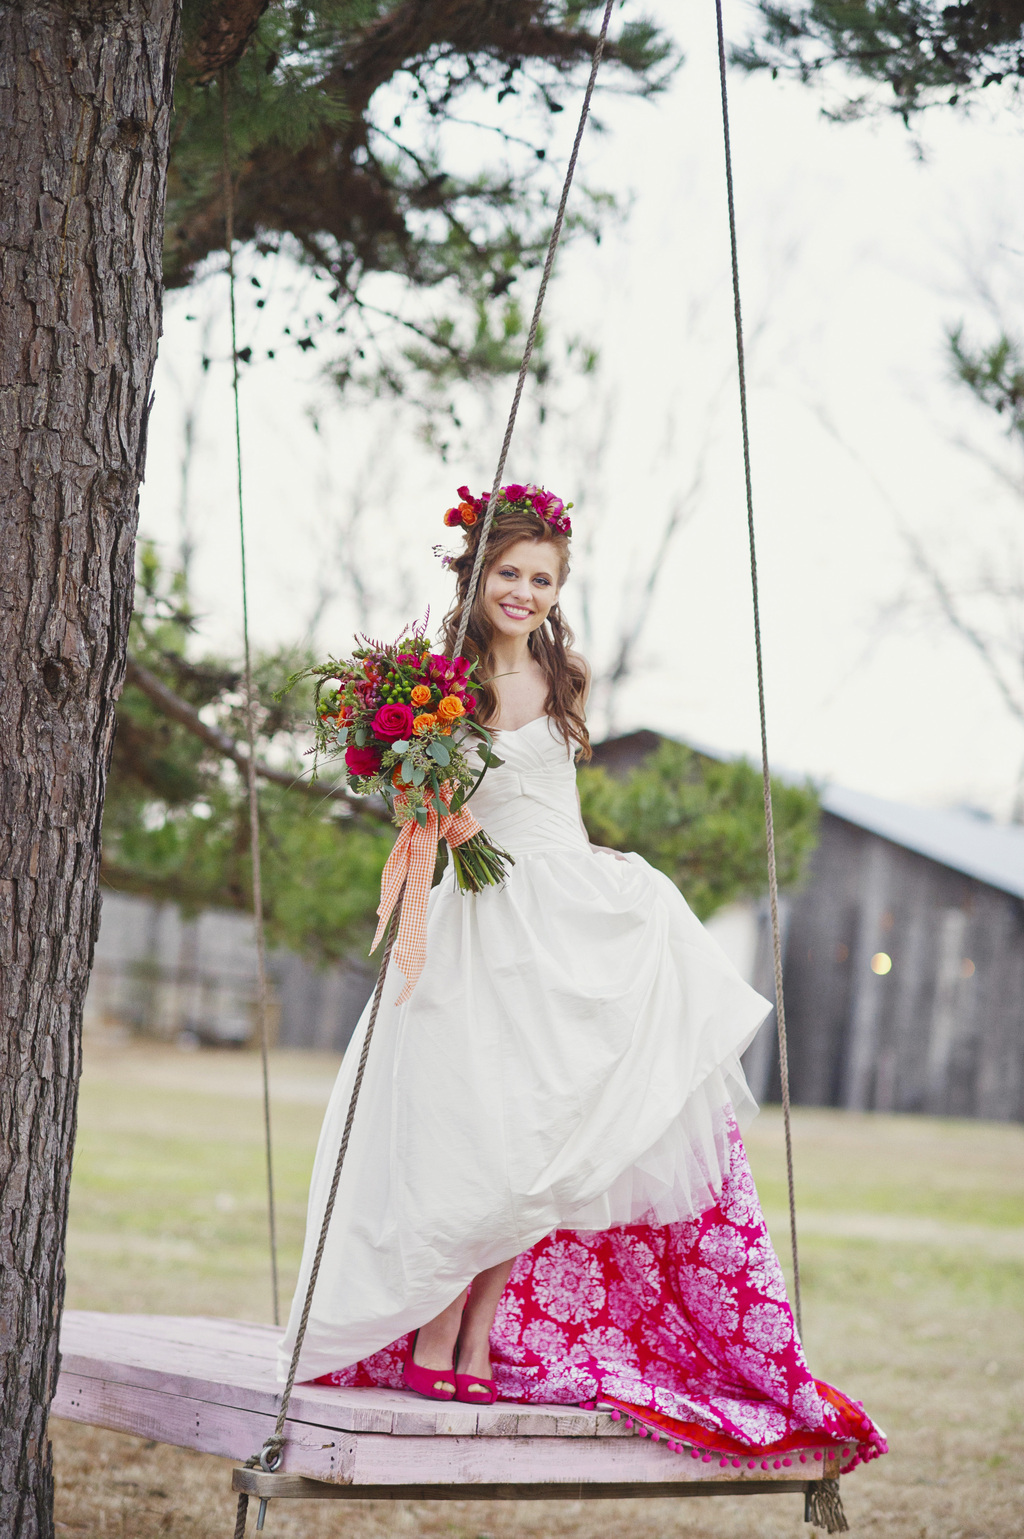 Romantic-bride-poses-on-swing-shows-off-pink-petticoat.full